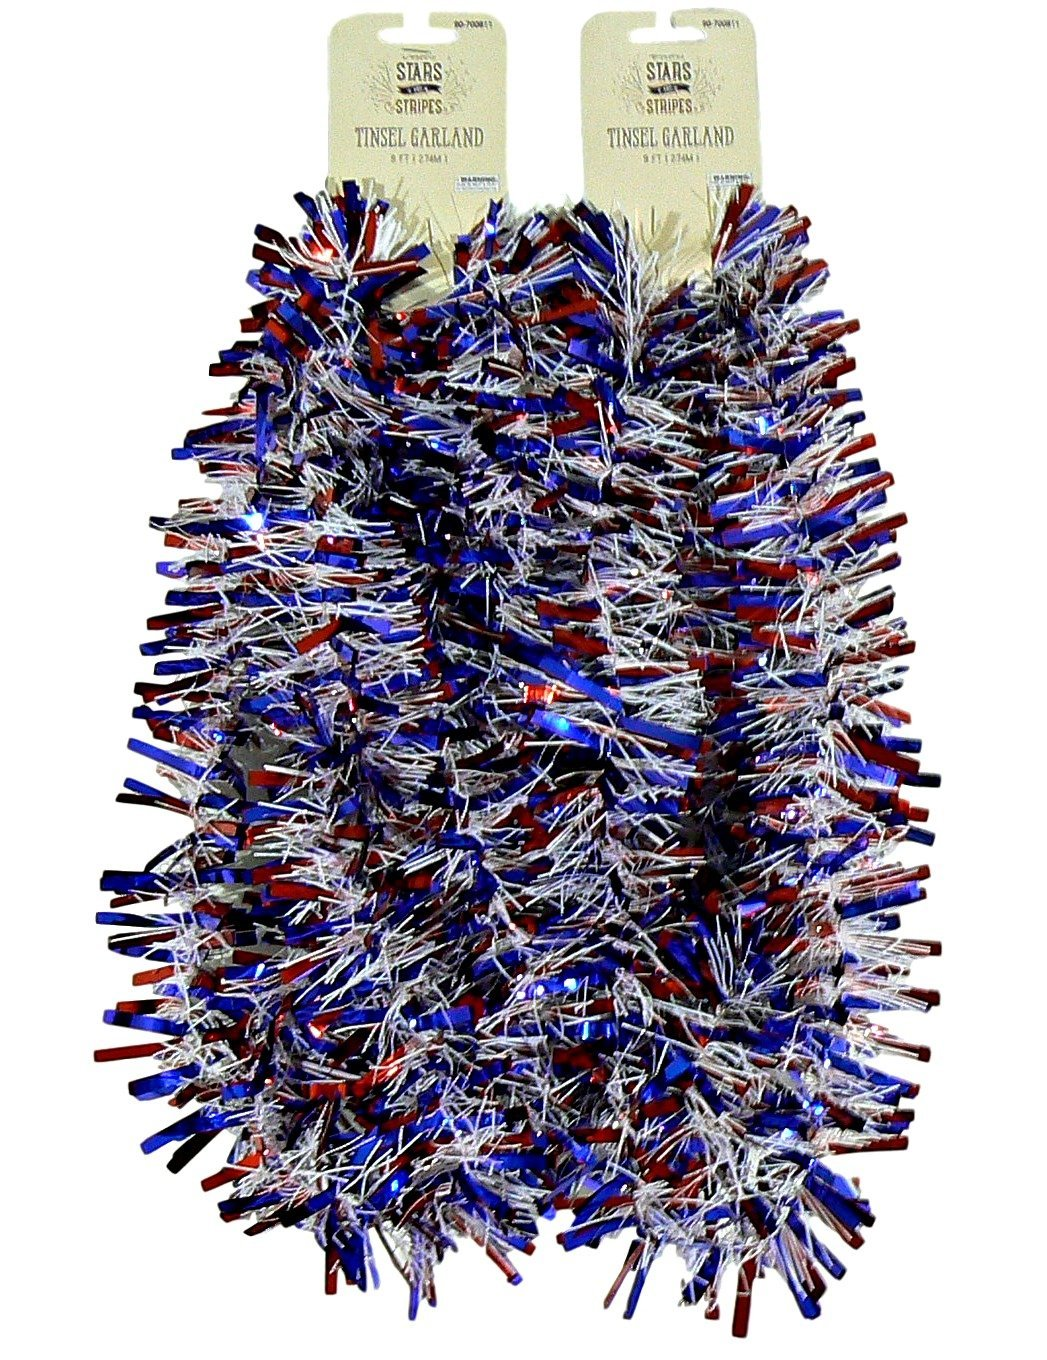 Momentum Brands Decorative Patriotic Red White and Blue Tinsel Garland – 2 pc 9 feet each (Red Blue Wide)